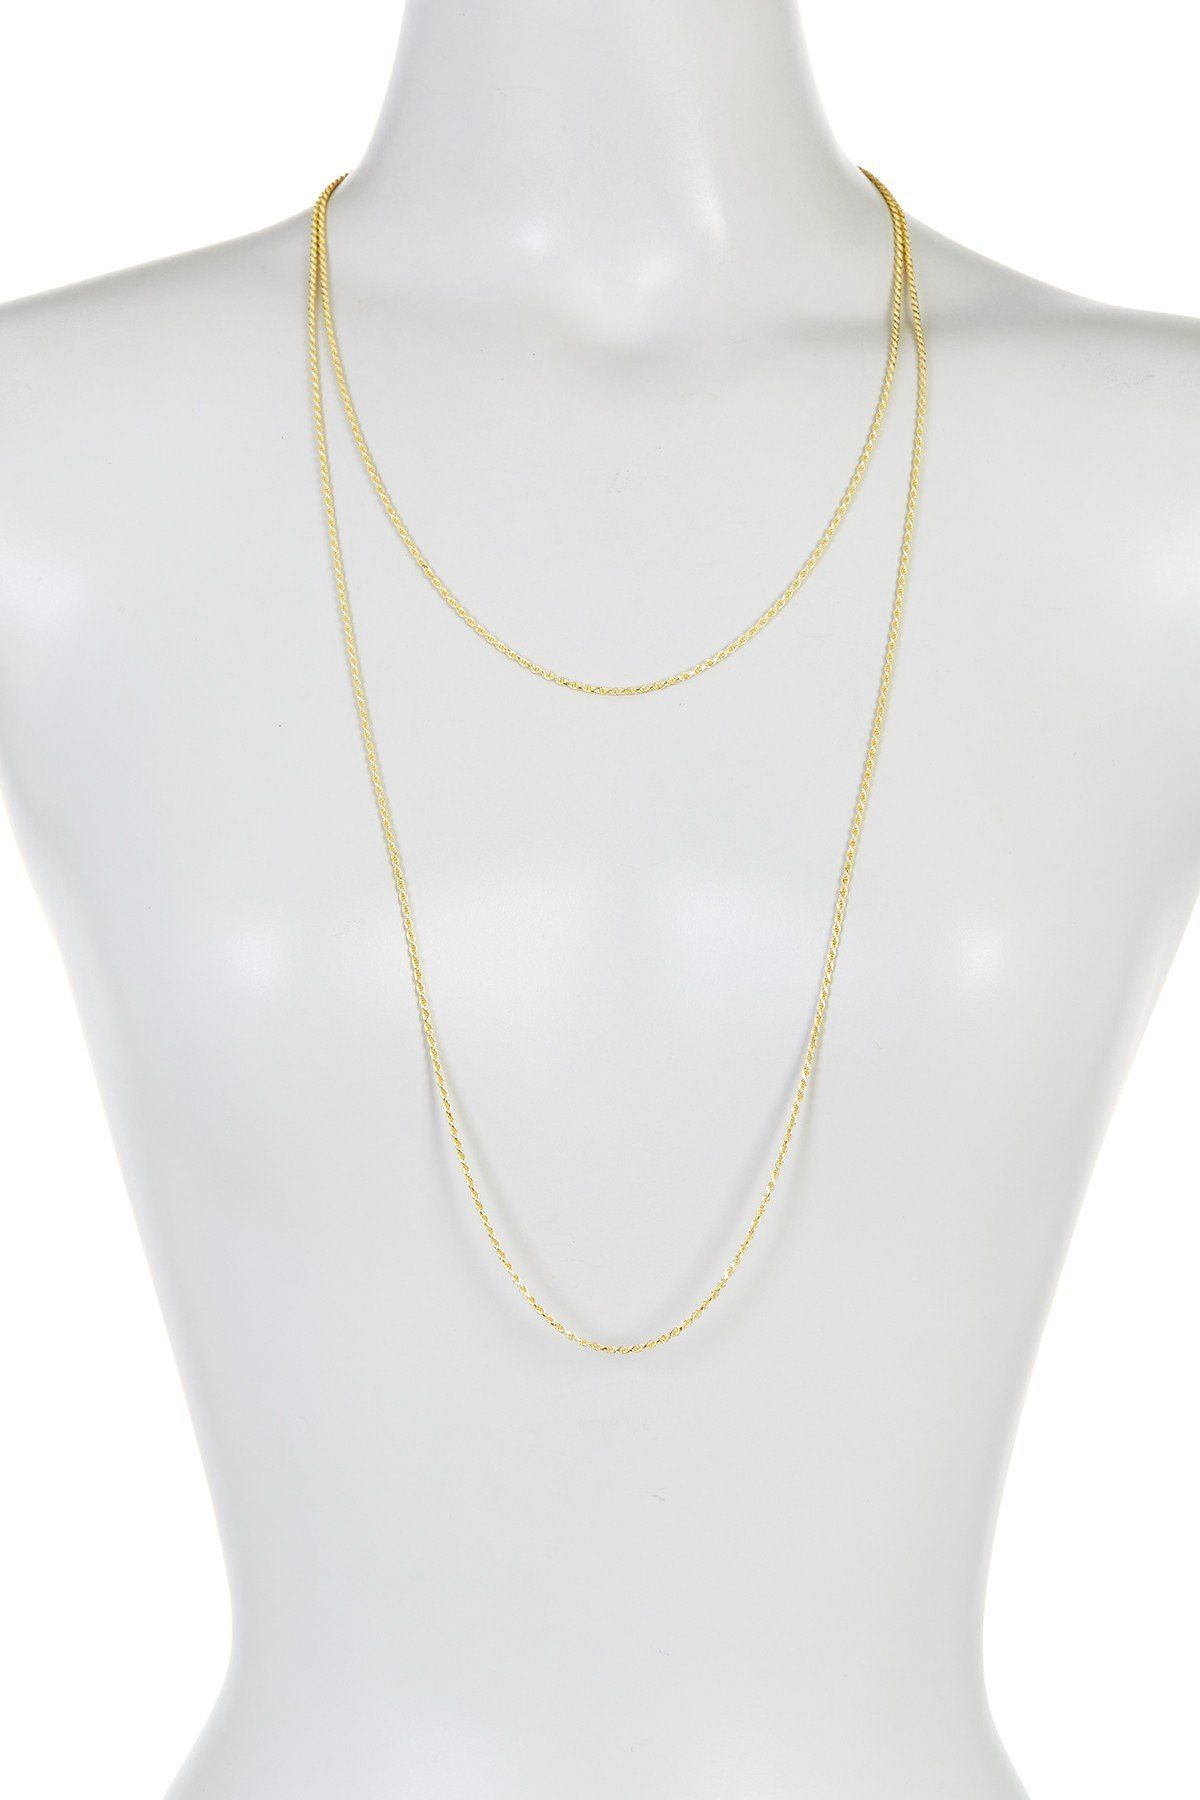 K gold plated sterling silver rope chain necklace set of